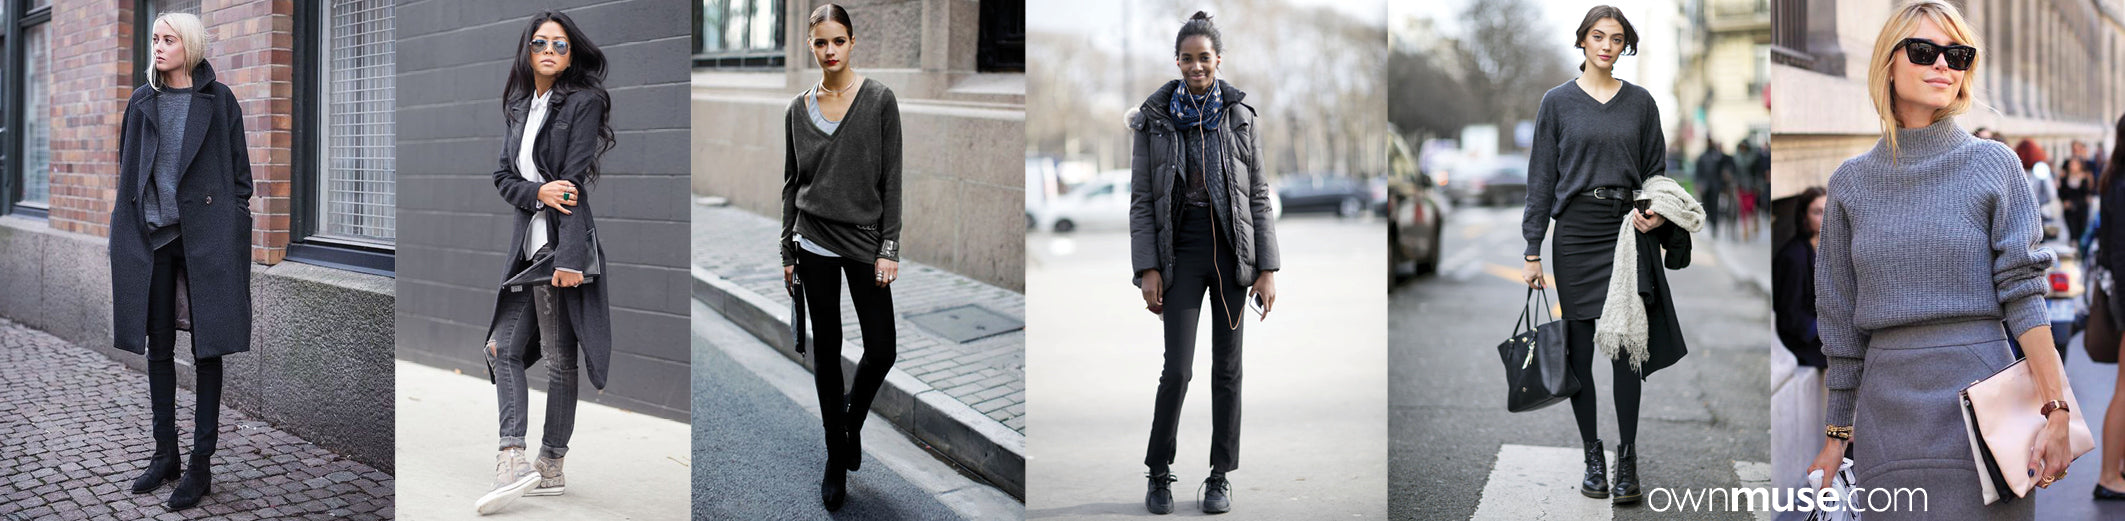 Street style fashion and style in base colour dark grey featured on ownmuse.com